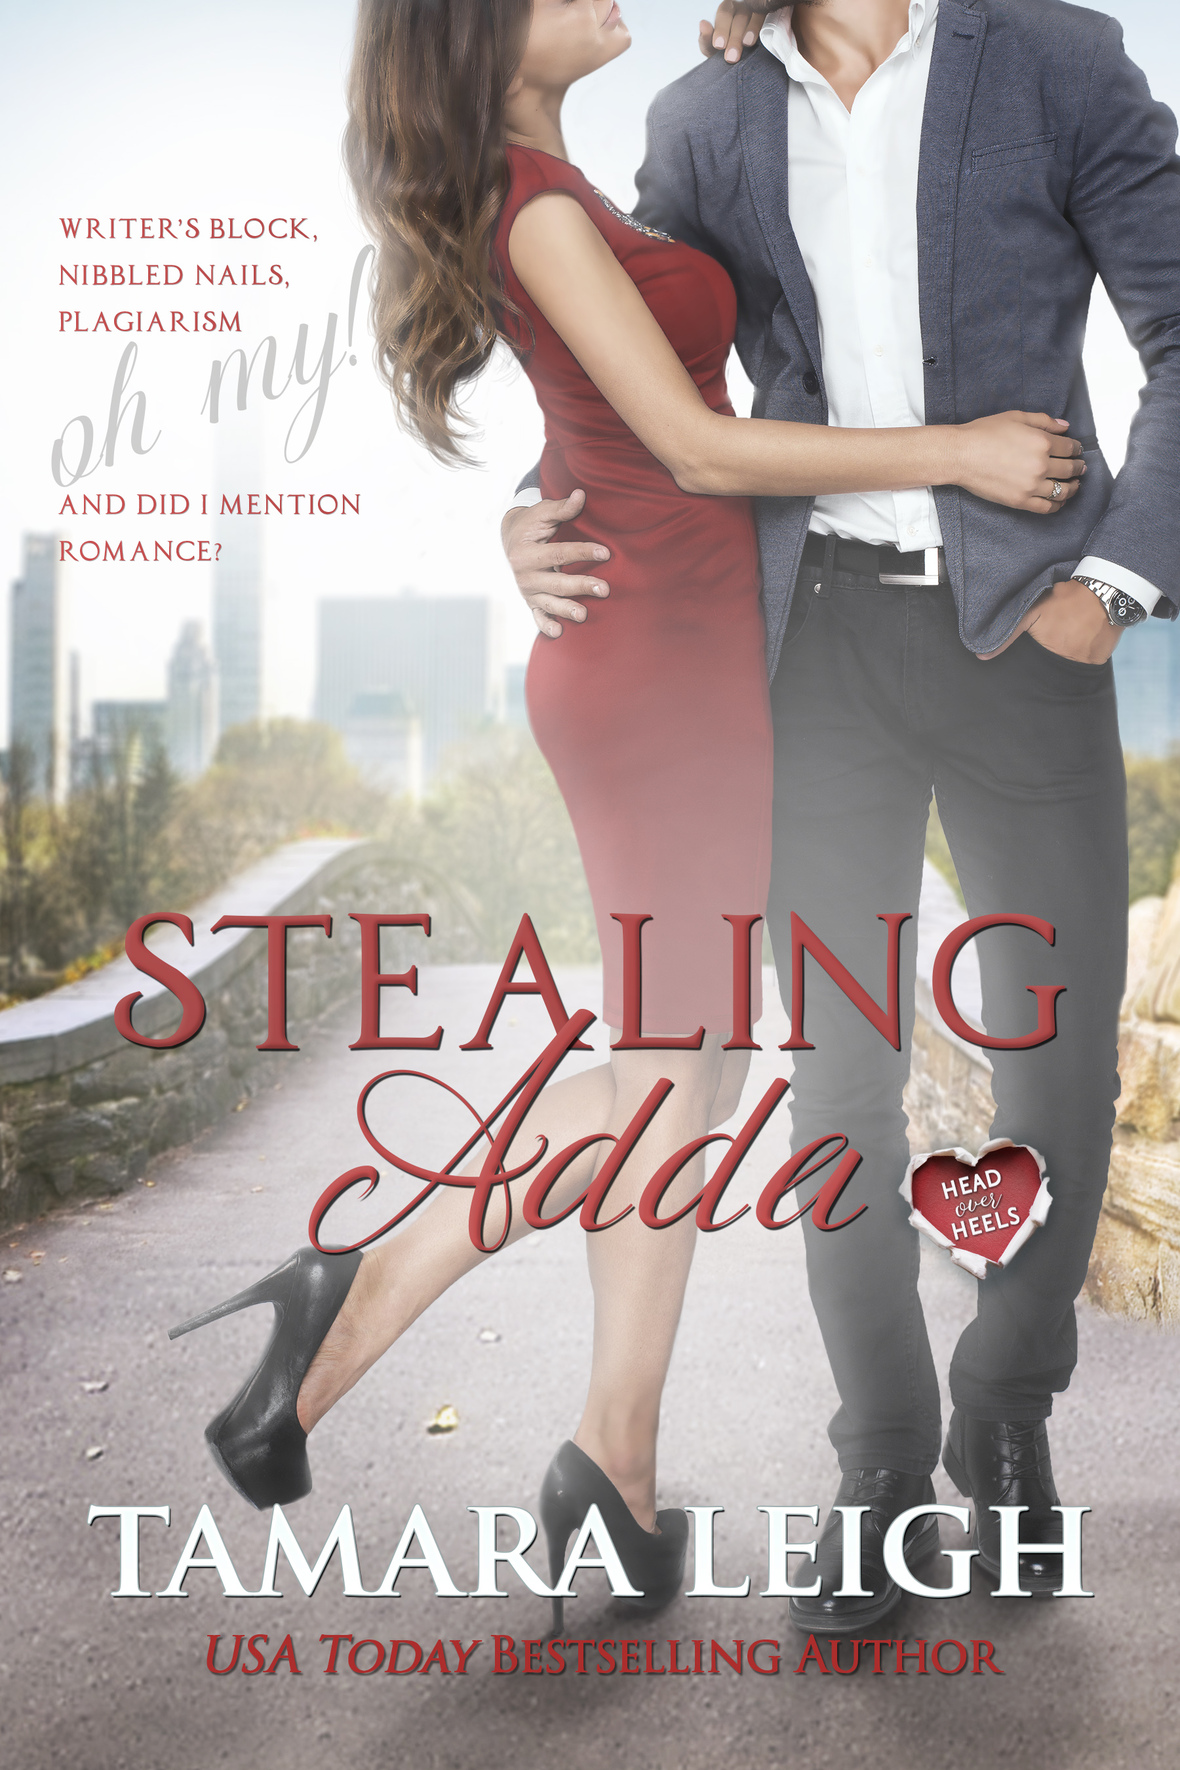 CLBD2018 Tamara Leigh HOH Stealing Adda EBOOK FINAL20190112